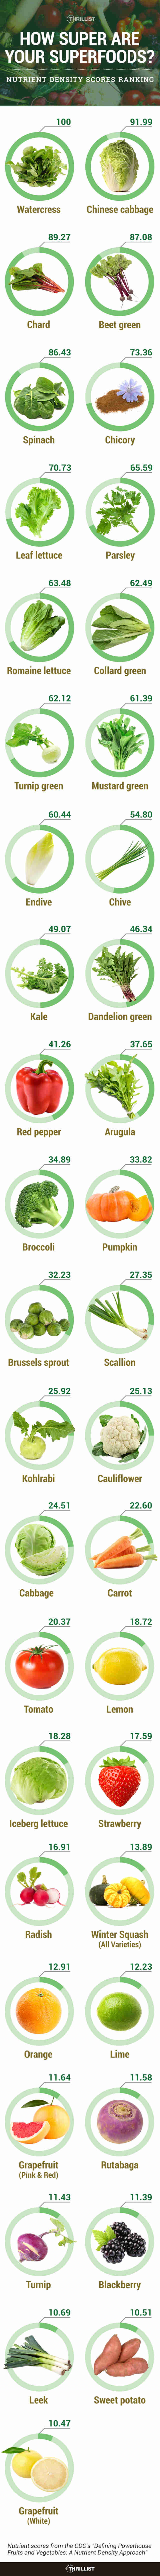 superfood, nutrition, infographic